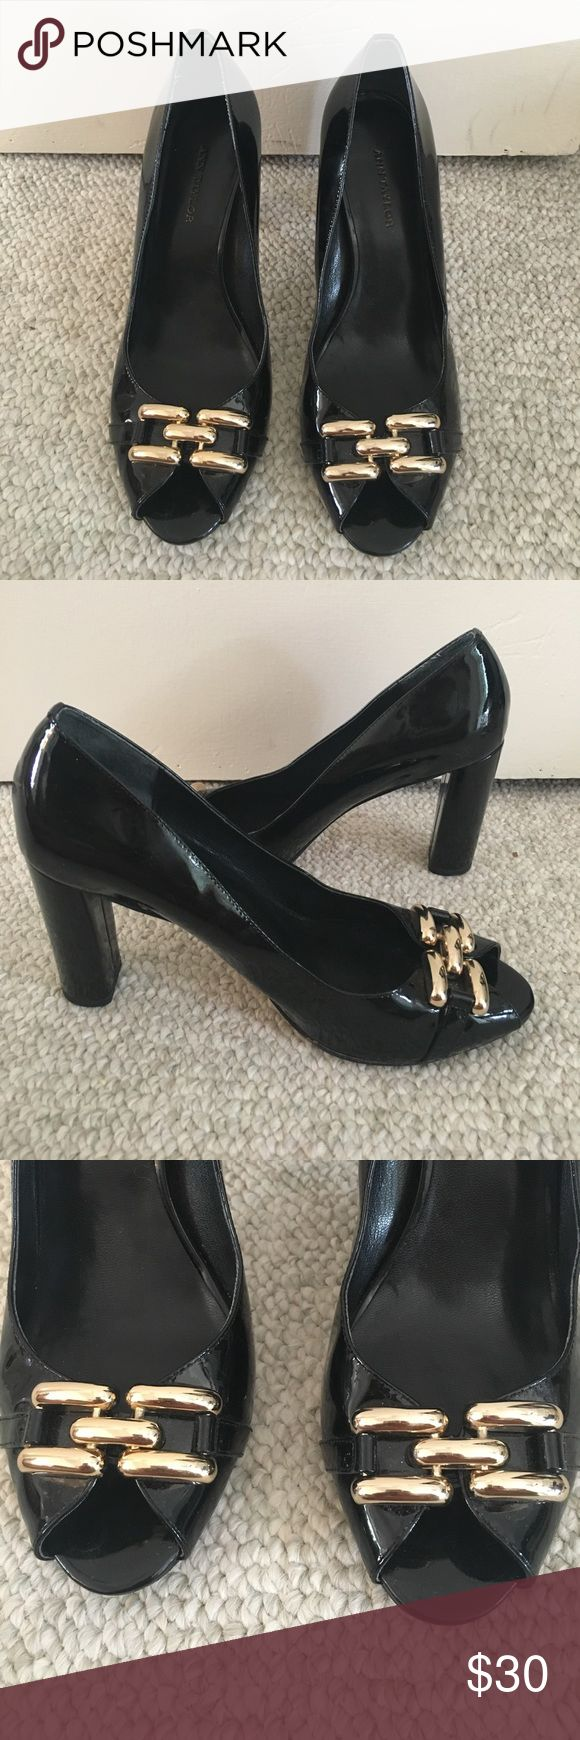 Ann Taylor Black Peep Toe Heels Ann Taylor black patent leather peep toe heels with gold details. Has a 3.5 semi block heel. In great condition. Runs true to size. Ann Taylor Shoes Heels